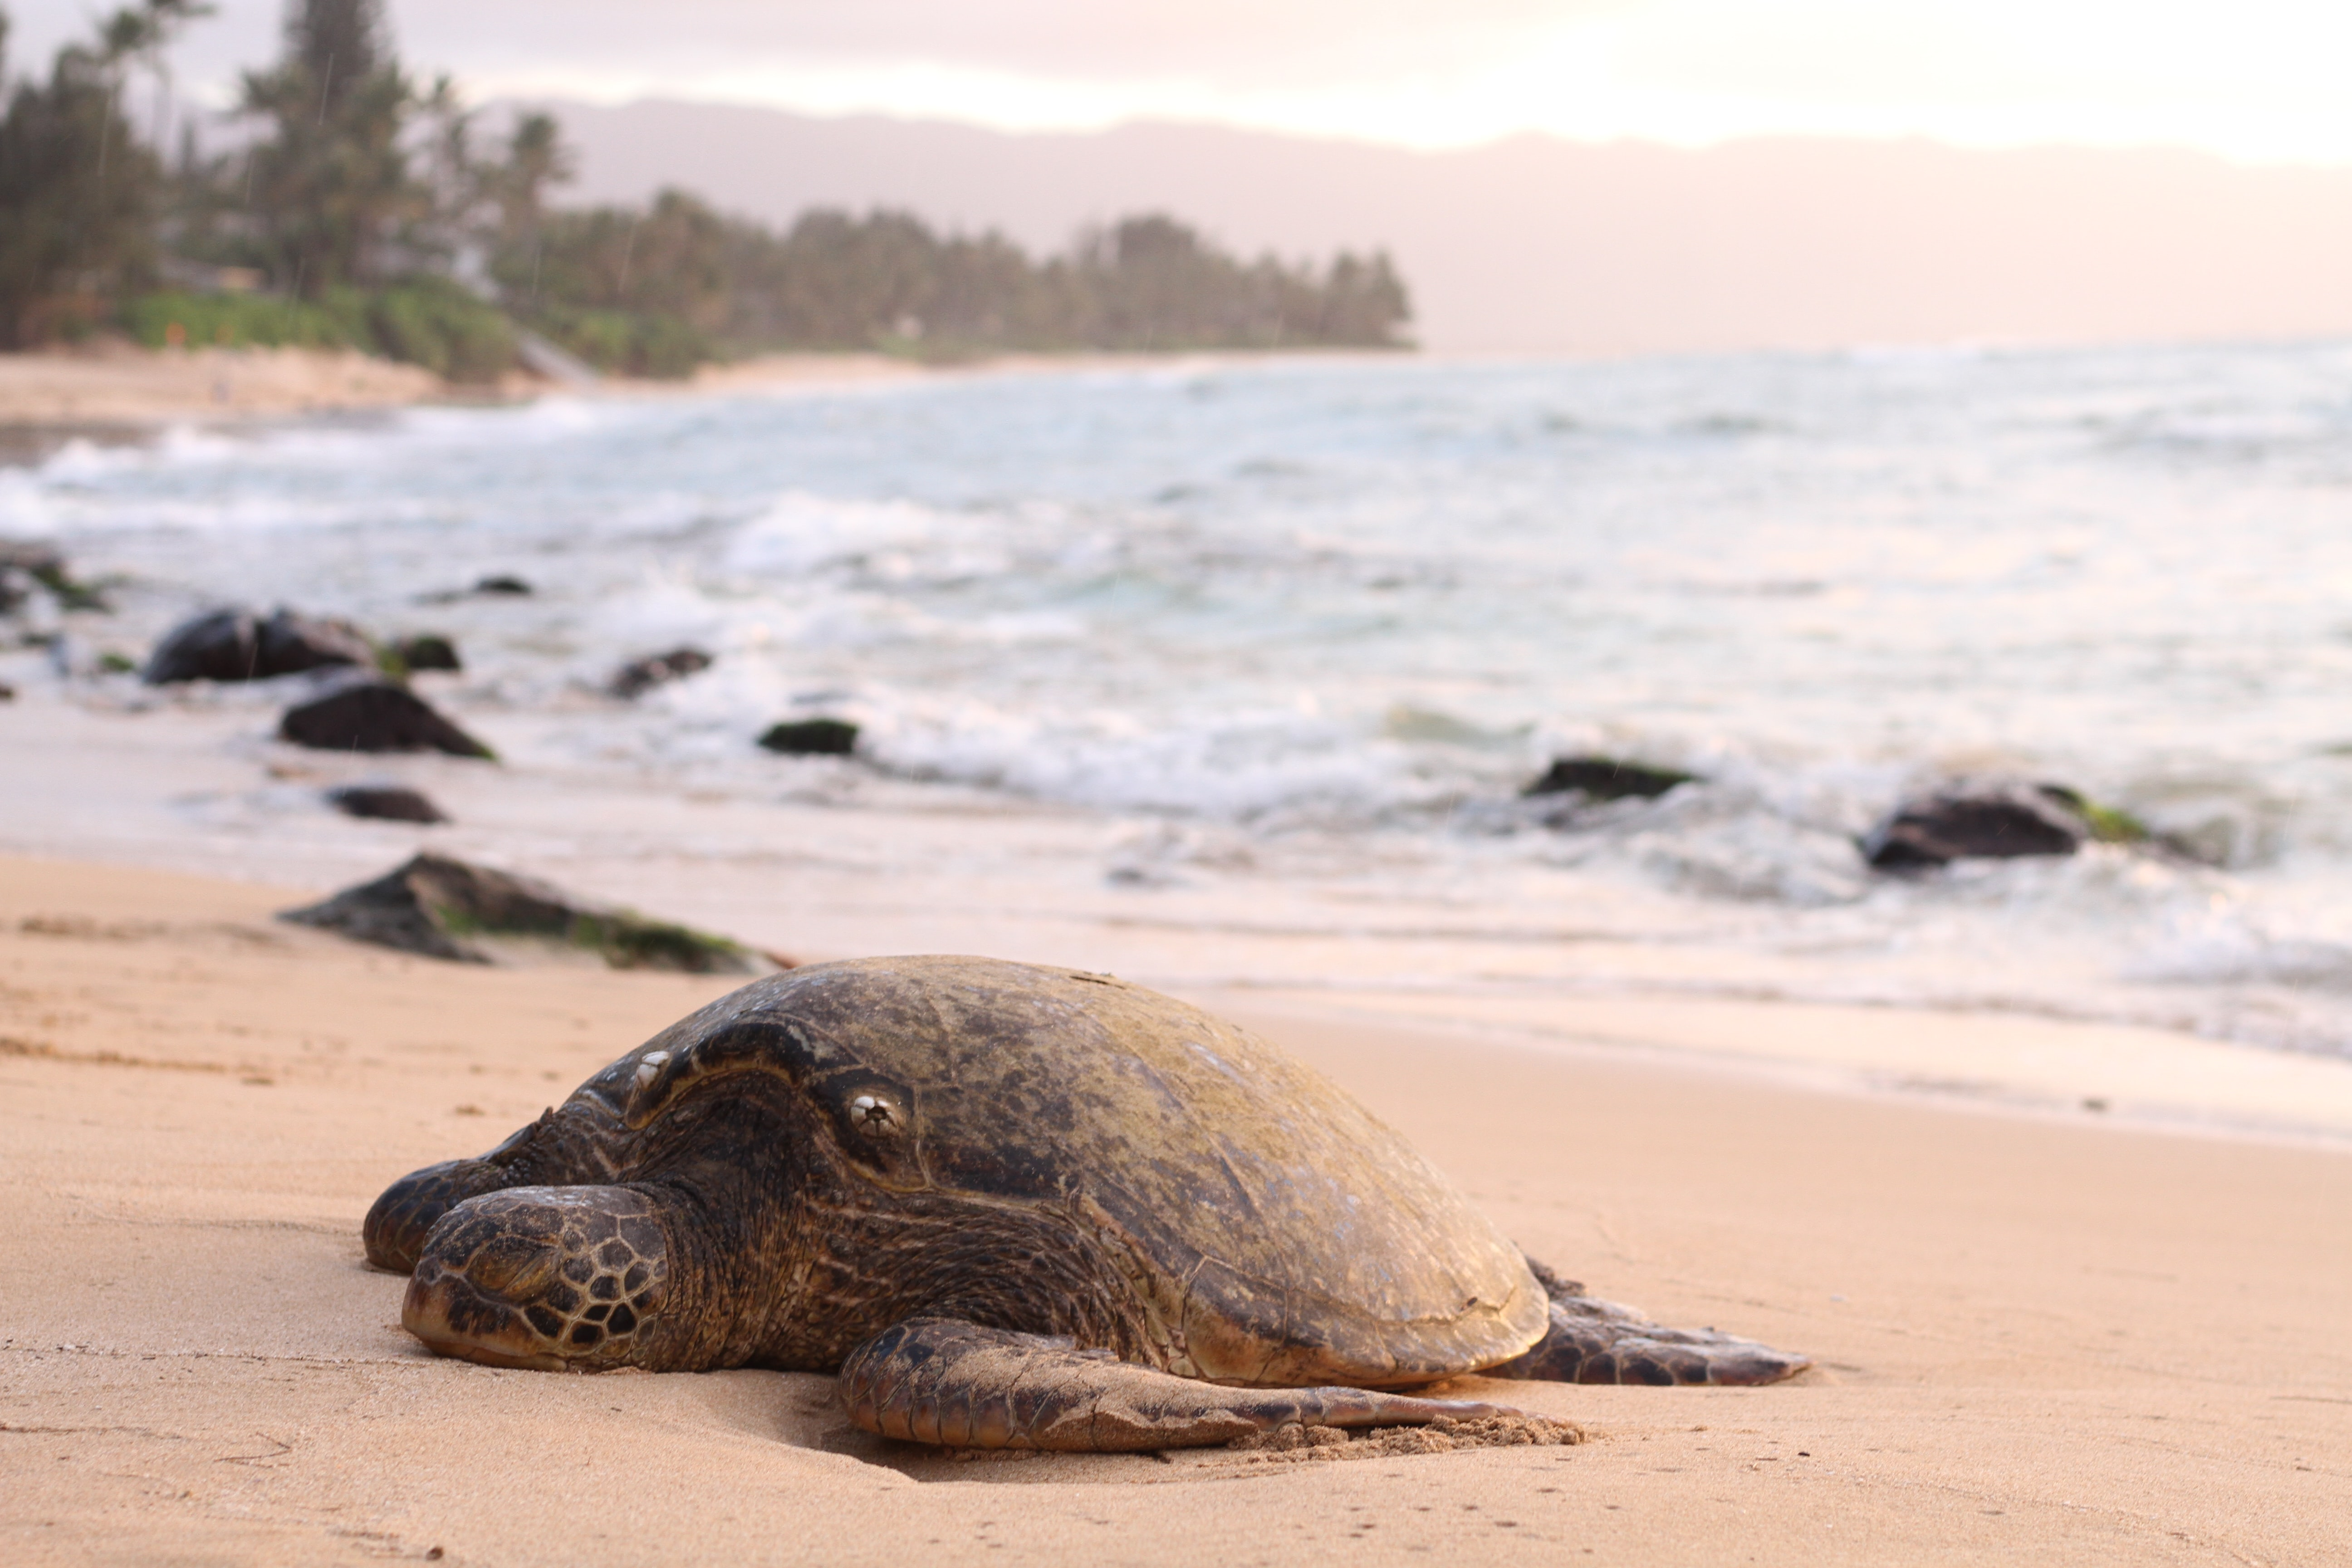 shallow focus photography of turtle lying on beach sand during daytime